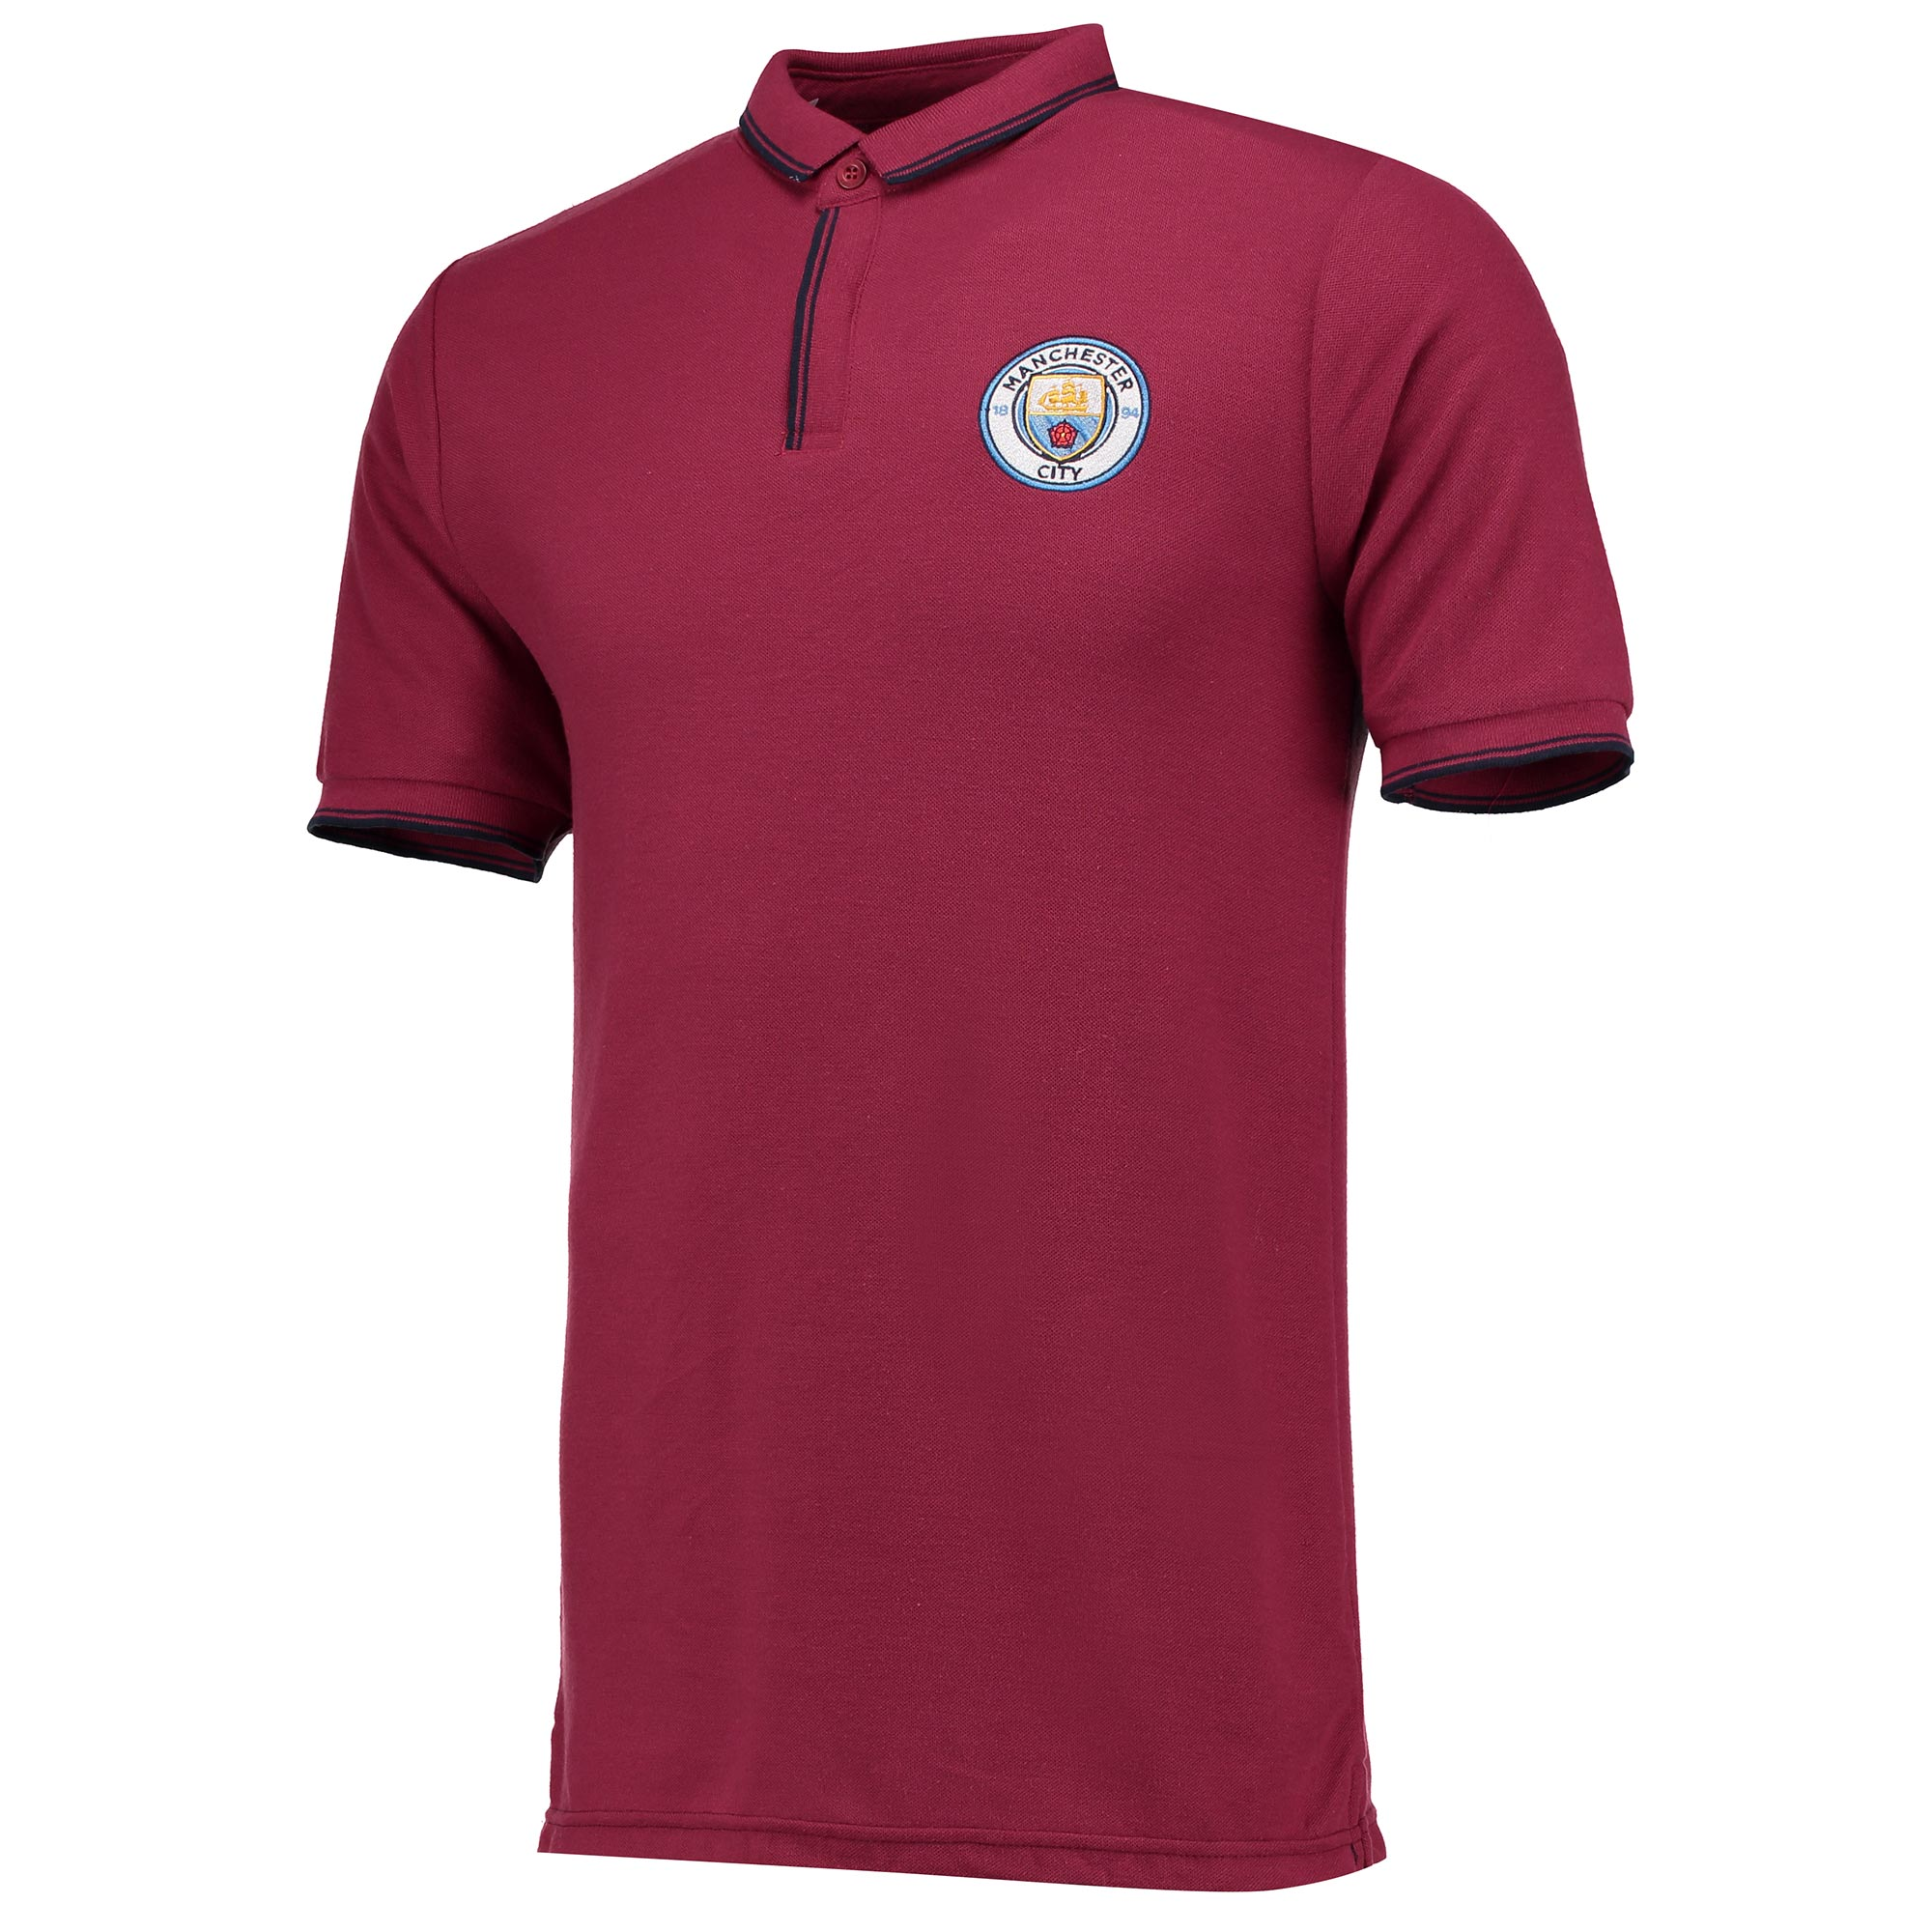 Manchester City Classic Slim Fit Polo Shirt - Maroon